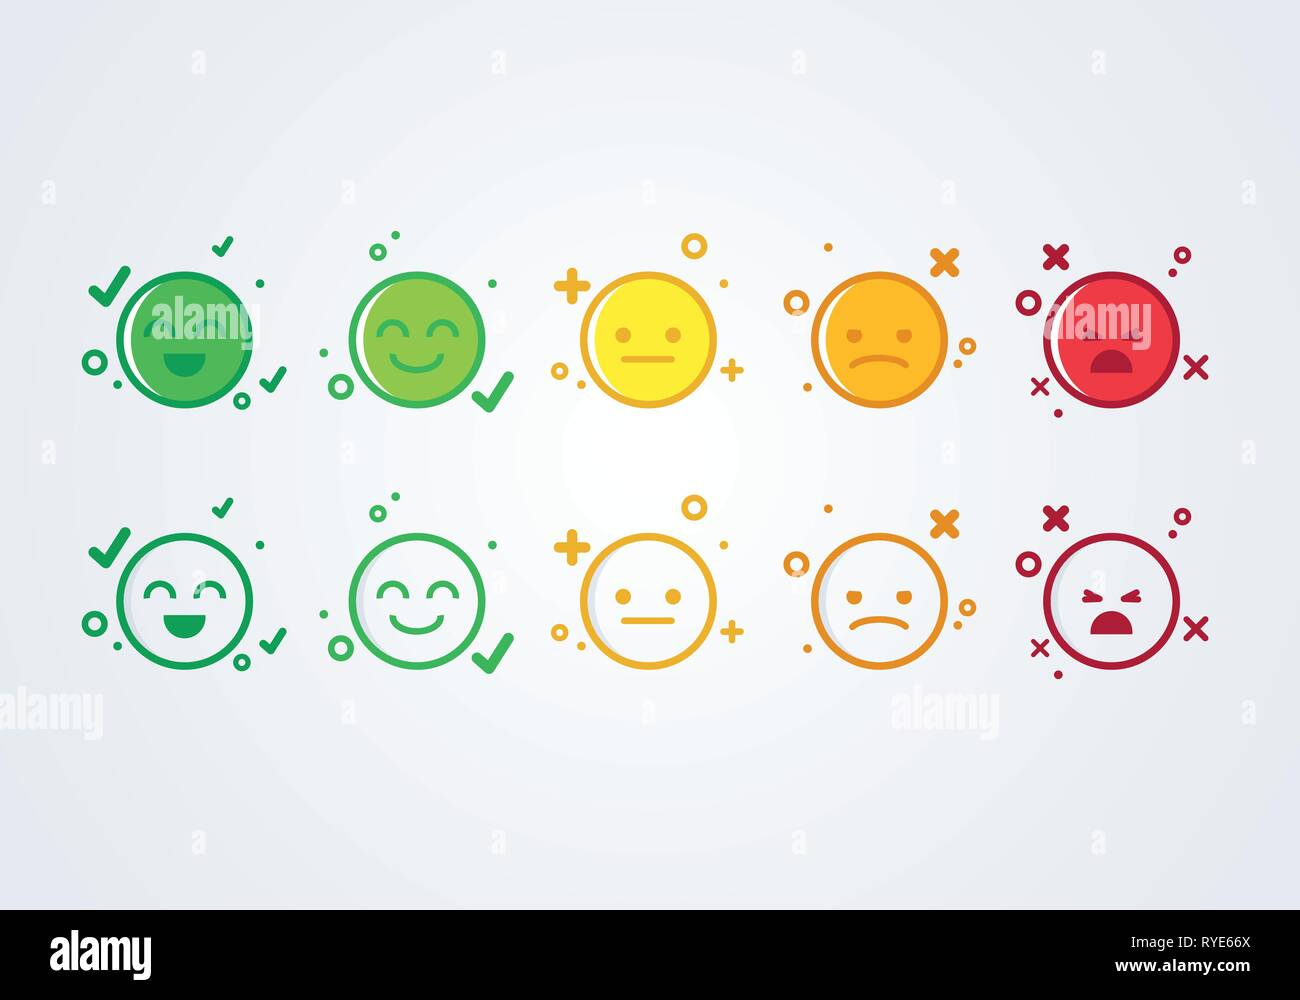 vector illustration user experience feedback concept different mood smiley emoticons emoji icon positive, neutral and negative. - Stock Image